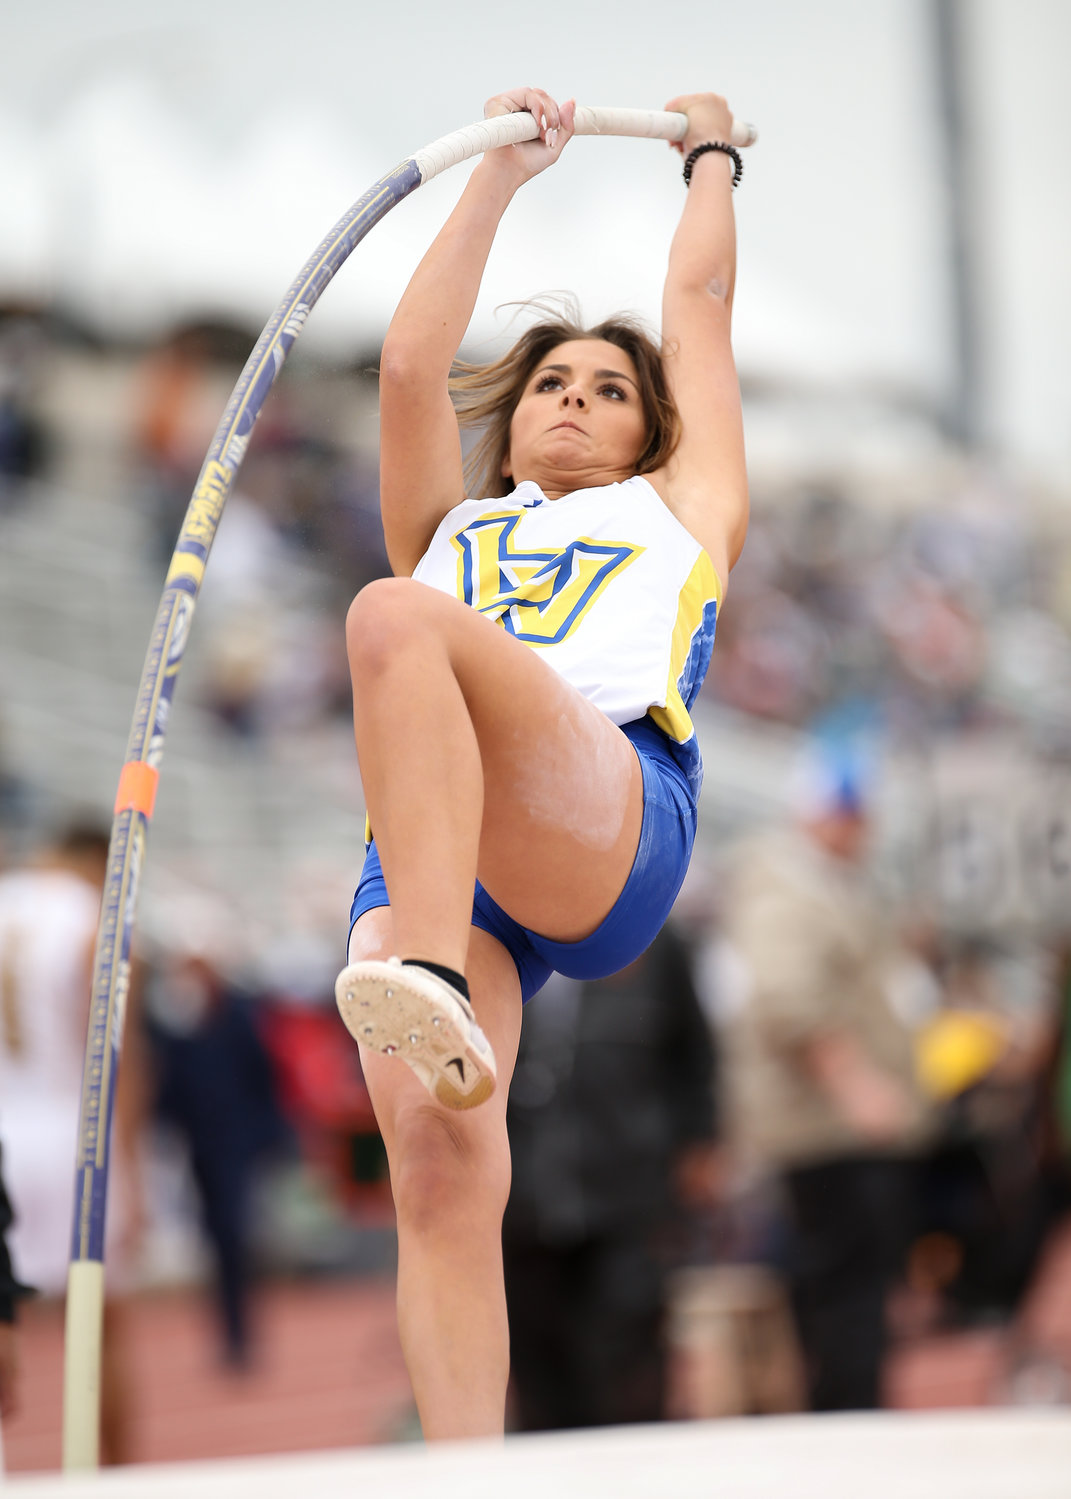 Landry Topo of Lago Vista High School competes in the Class 3A girls pole vault event at the UIL State Track and Field Meet on Friday, May 10, 2019 at Mike A. Myers Stadium in Austin, Texas.